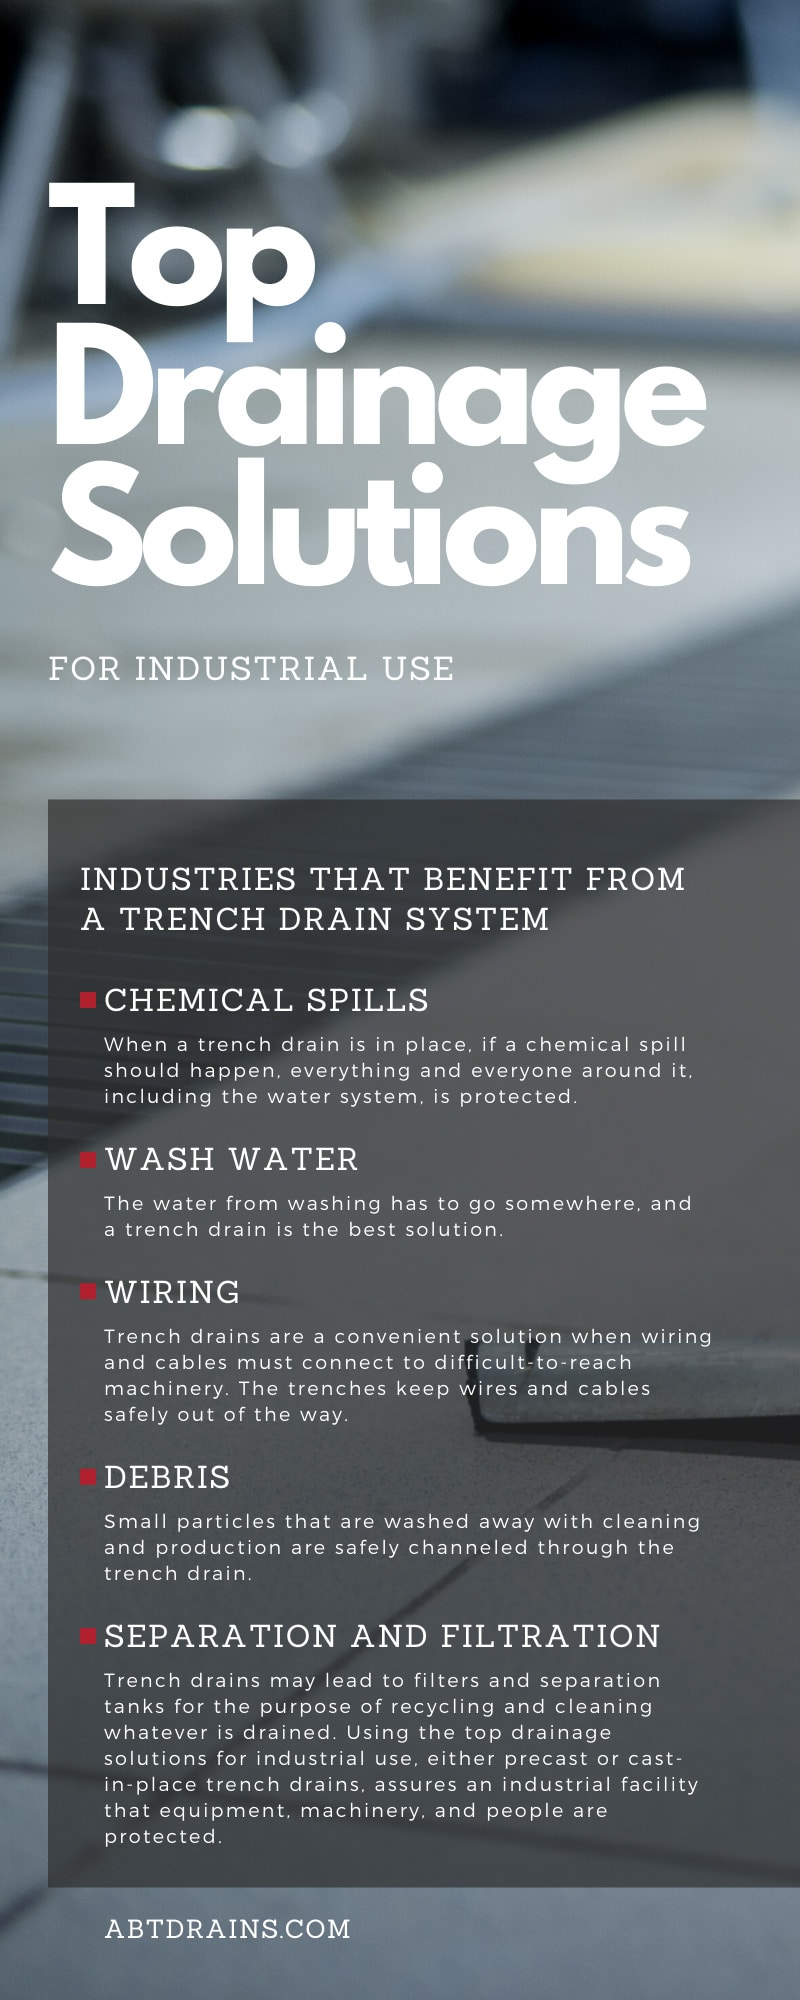 Top Drainage Solutions for Industrial Use